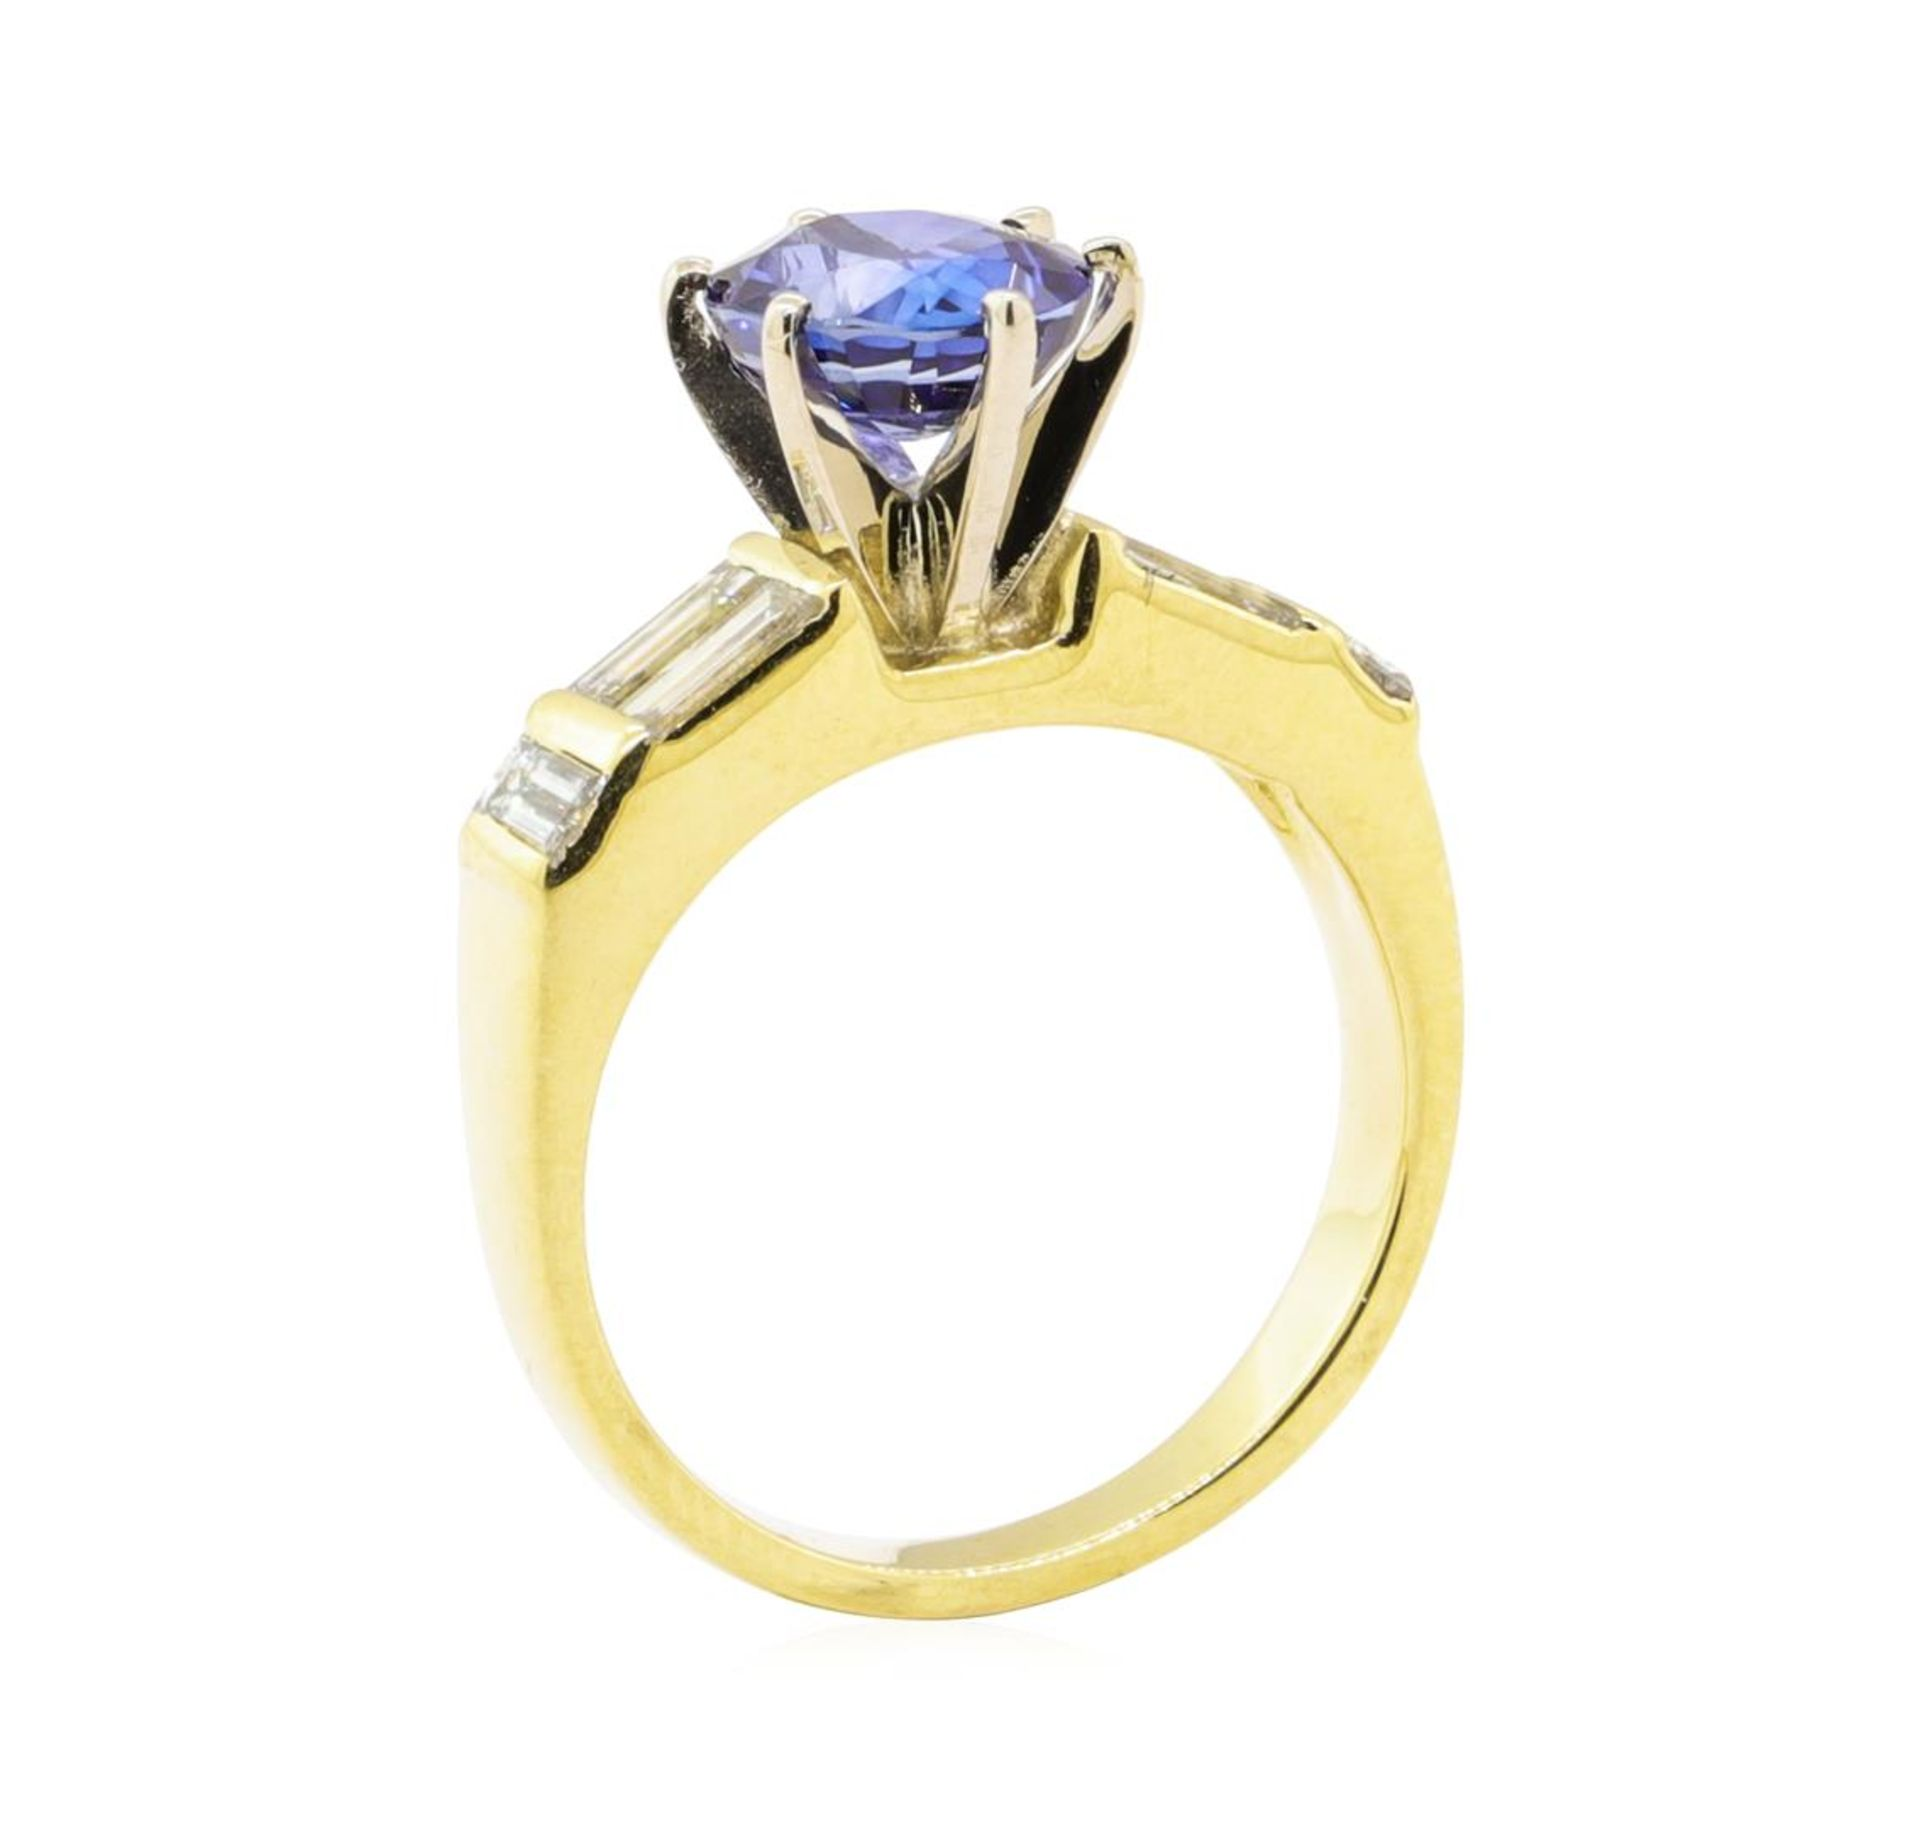 2.93 ctw Blue Sapphire And Diamond With Elevated Shoulders - 18KT Yellow Gold - Image 4 of 5